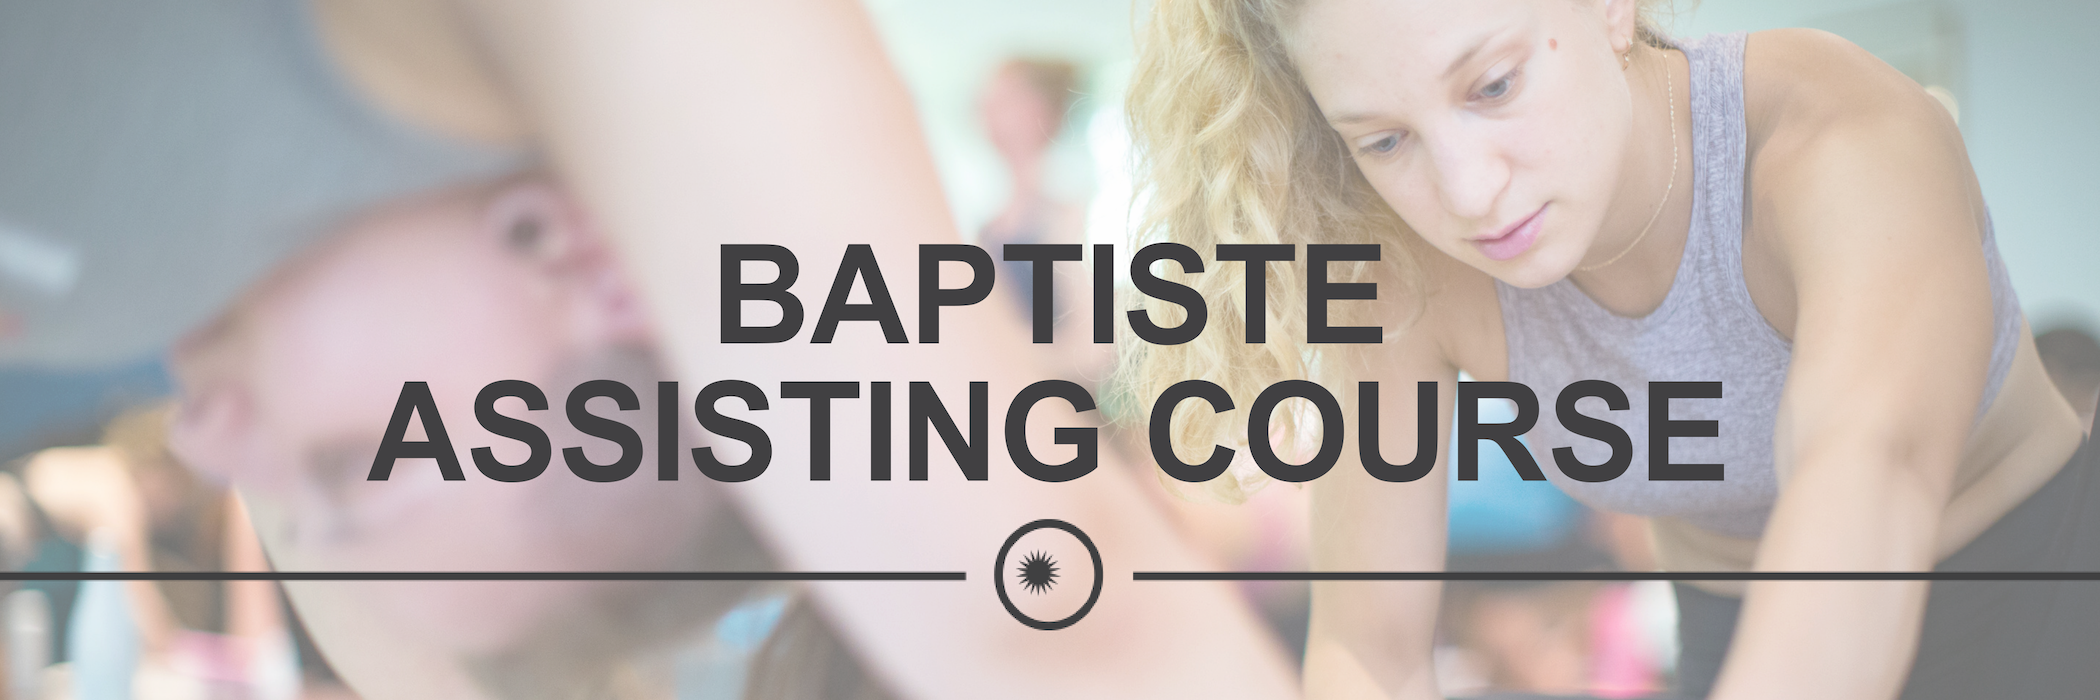 Boston Marriott Burlington | Baptiste Assisting Course